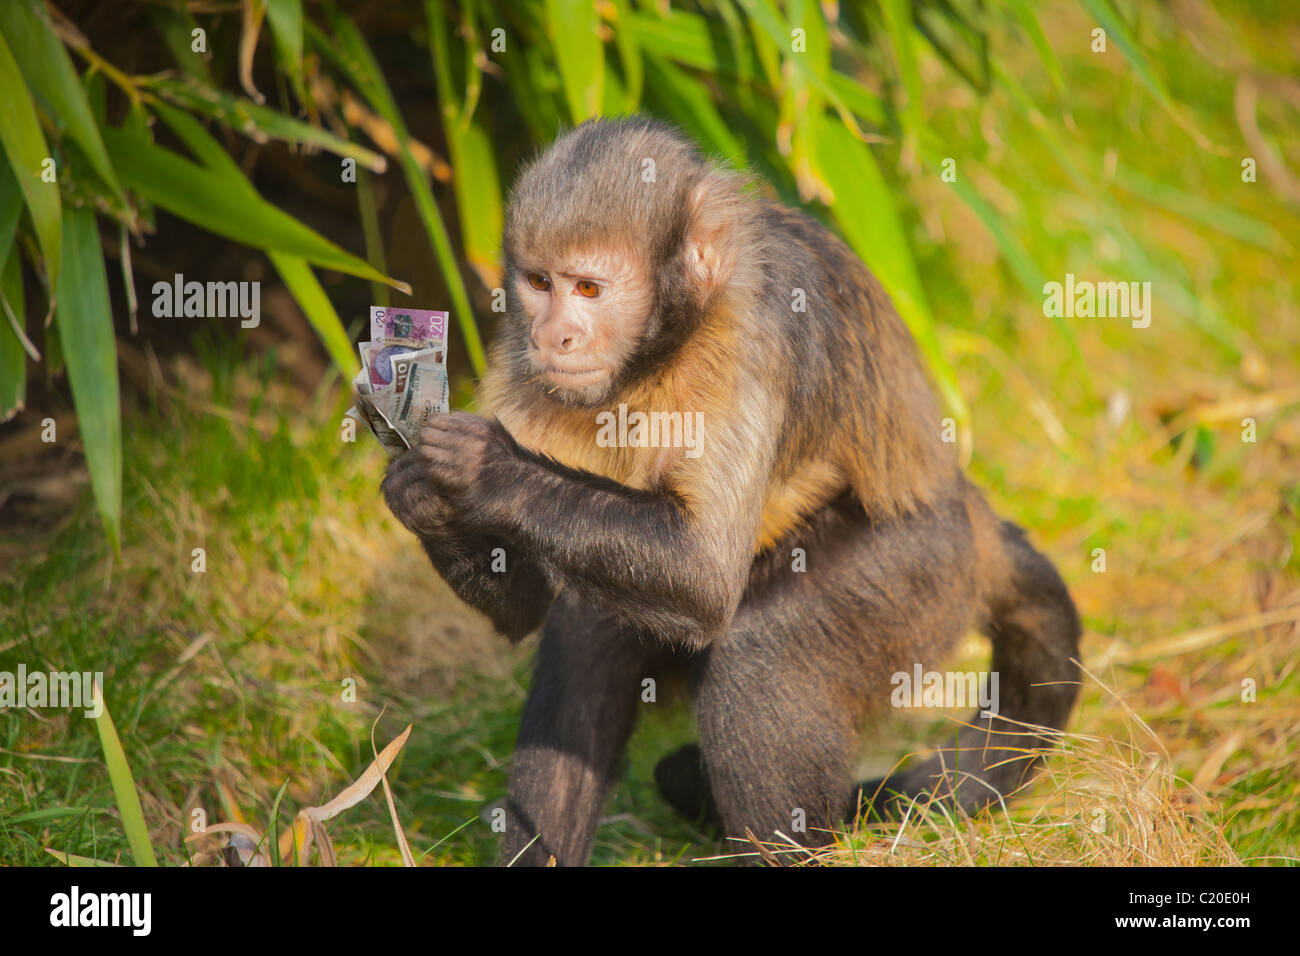 Financial concept, humour, monkey cash - Stock Image